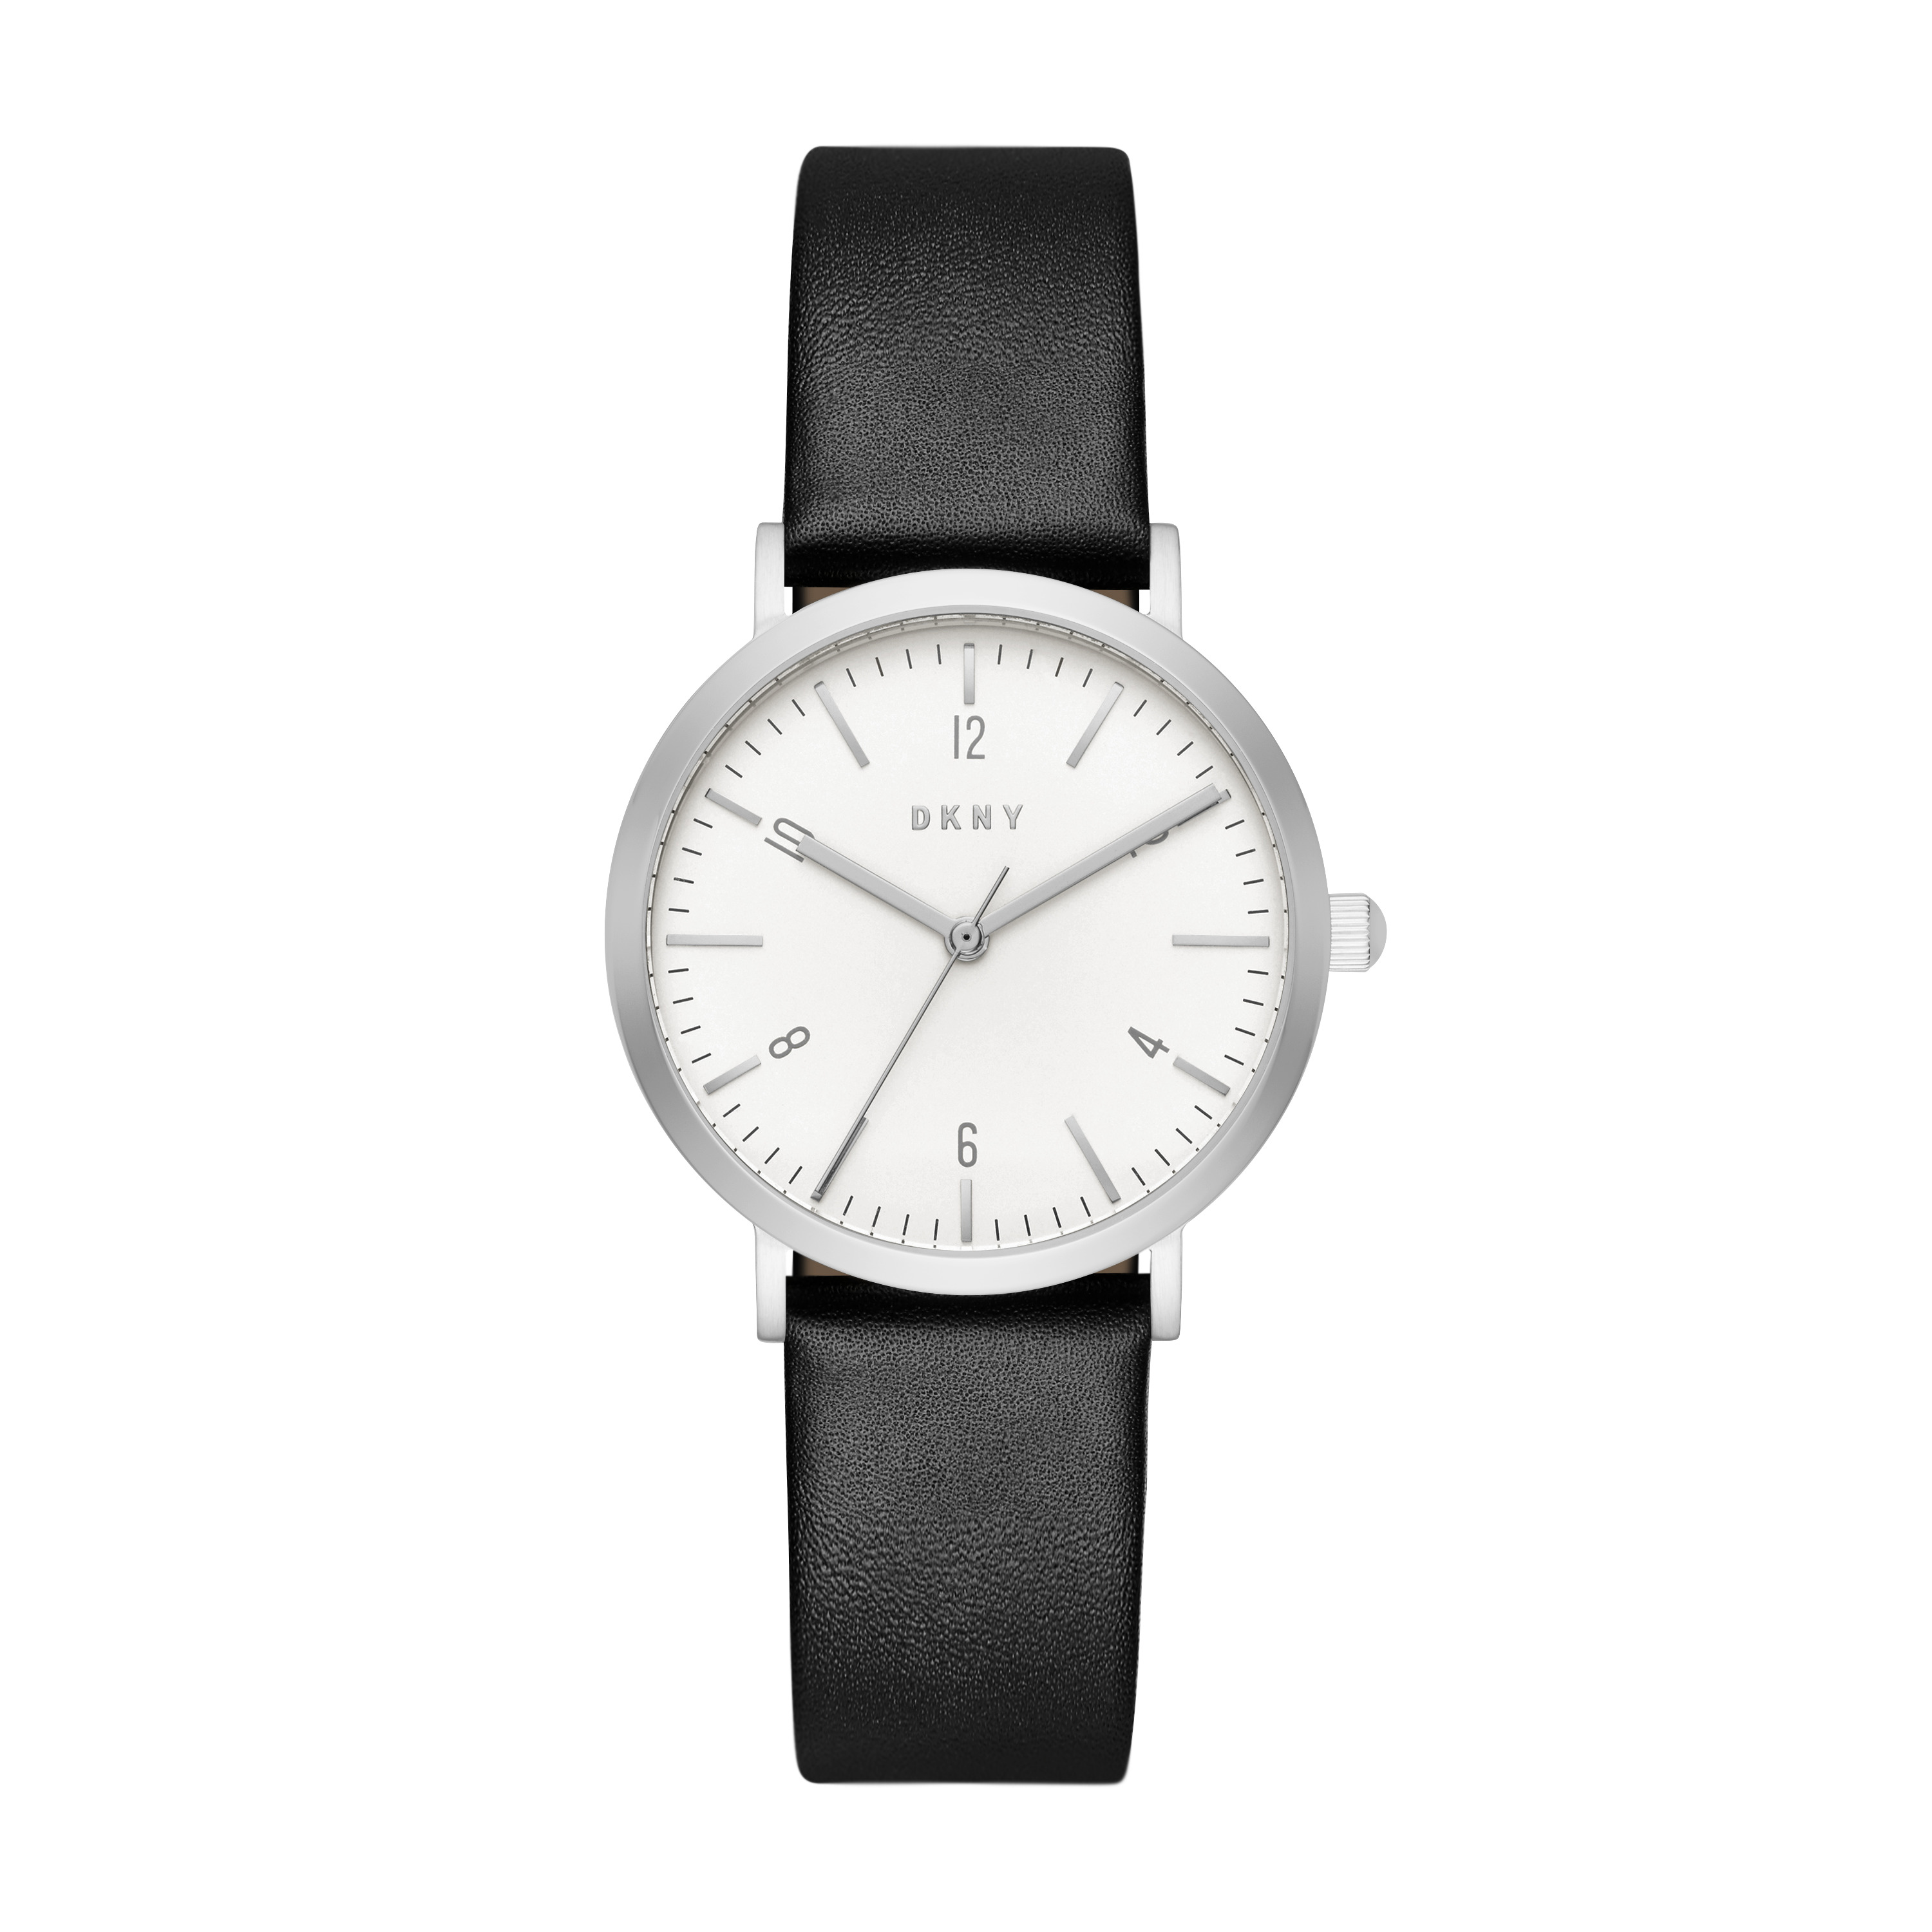 Minetta Black Leather With Stainless Steel Watch - DKNY